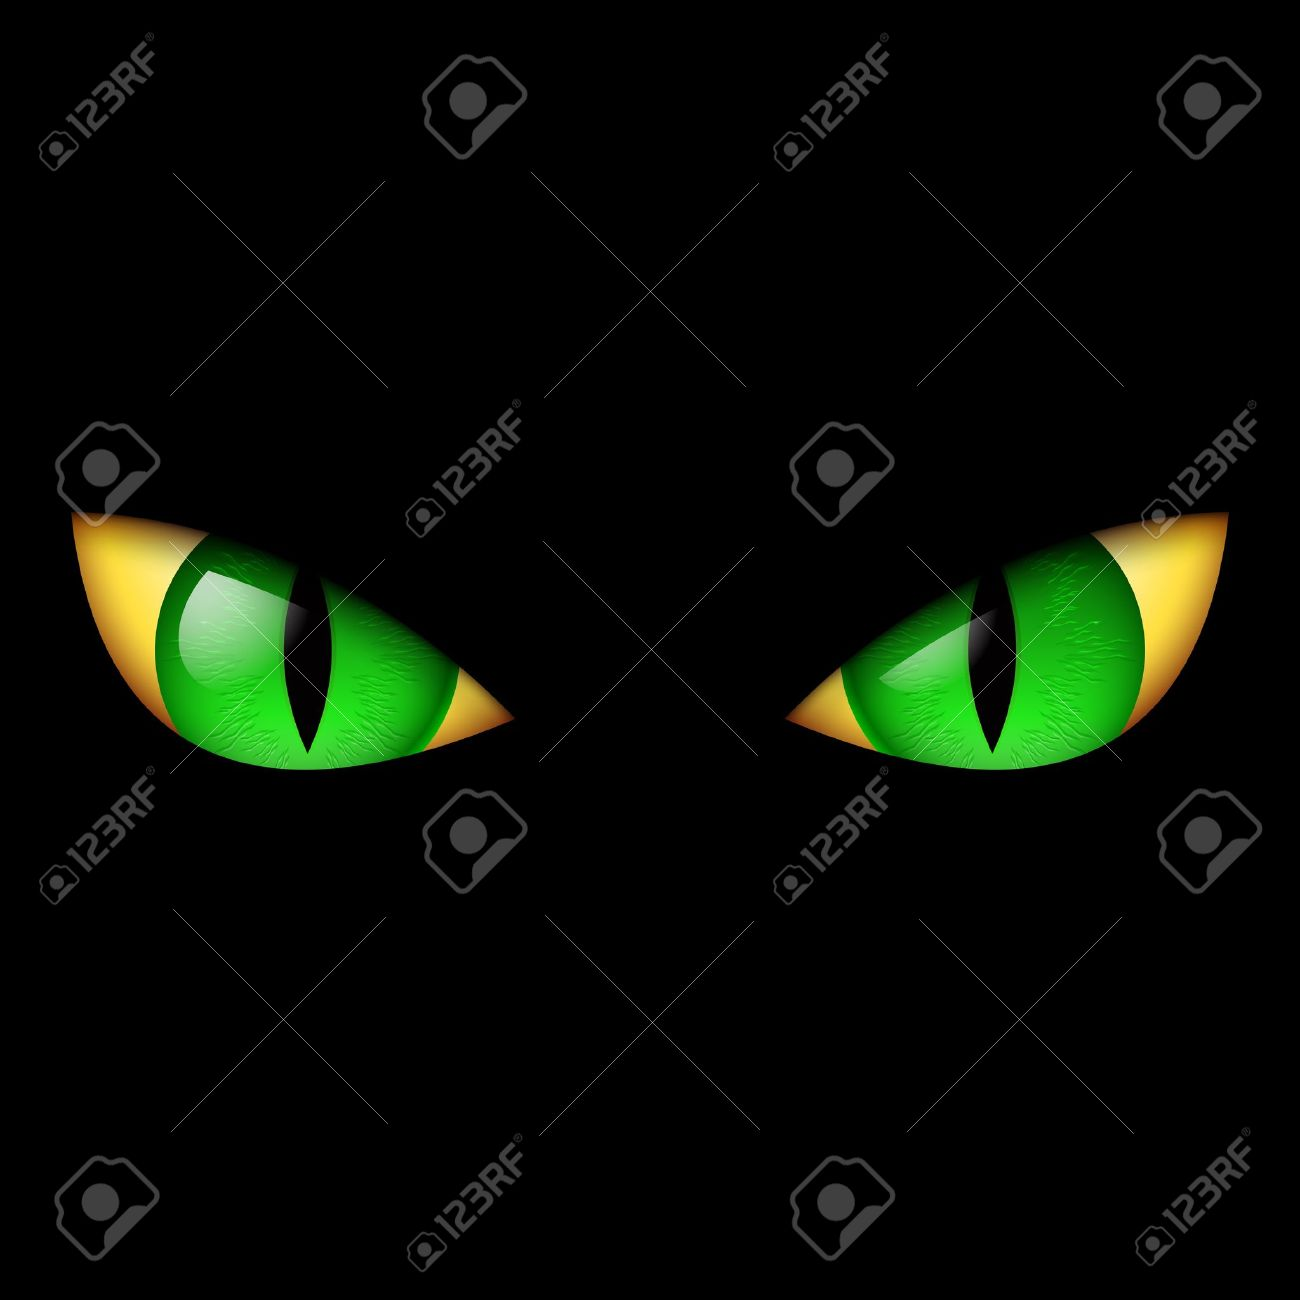 Evil Eyes Images & Stock Pictures Royalty Free Evil Eyes Photos How To Draw  Glowing Eyes